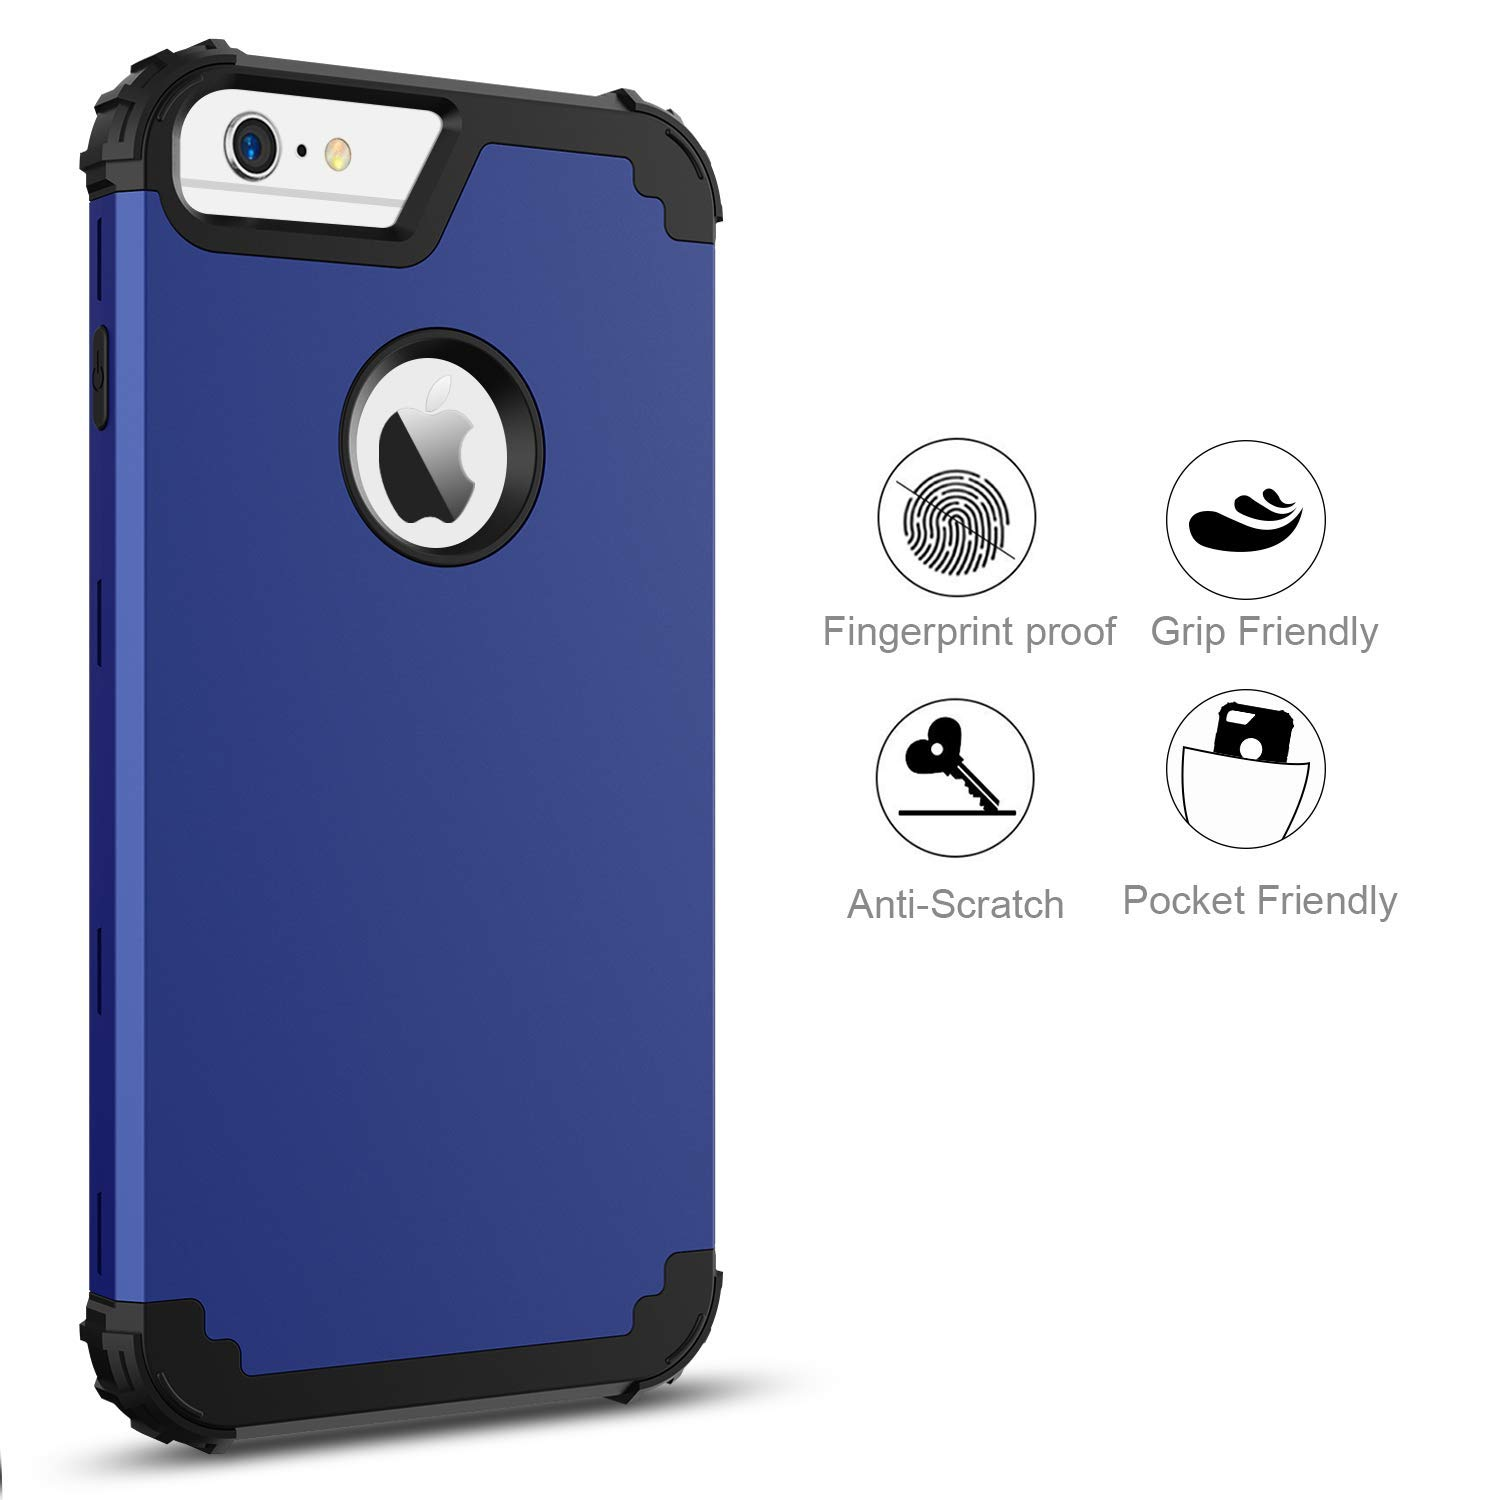 BENTOBEN Case for iPhone 6S Plus/iPhone 6 Plus, 3 in 1 Heavy Duty Rugged Hybrid Soft Silicone Bumper Hard PC Shockproof Non-Slip Protective Case for Apple iPhone 6S Plus/6 Plus (5.5 Inch), Blue/Black